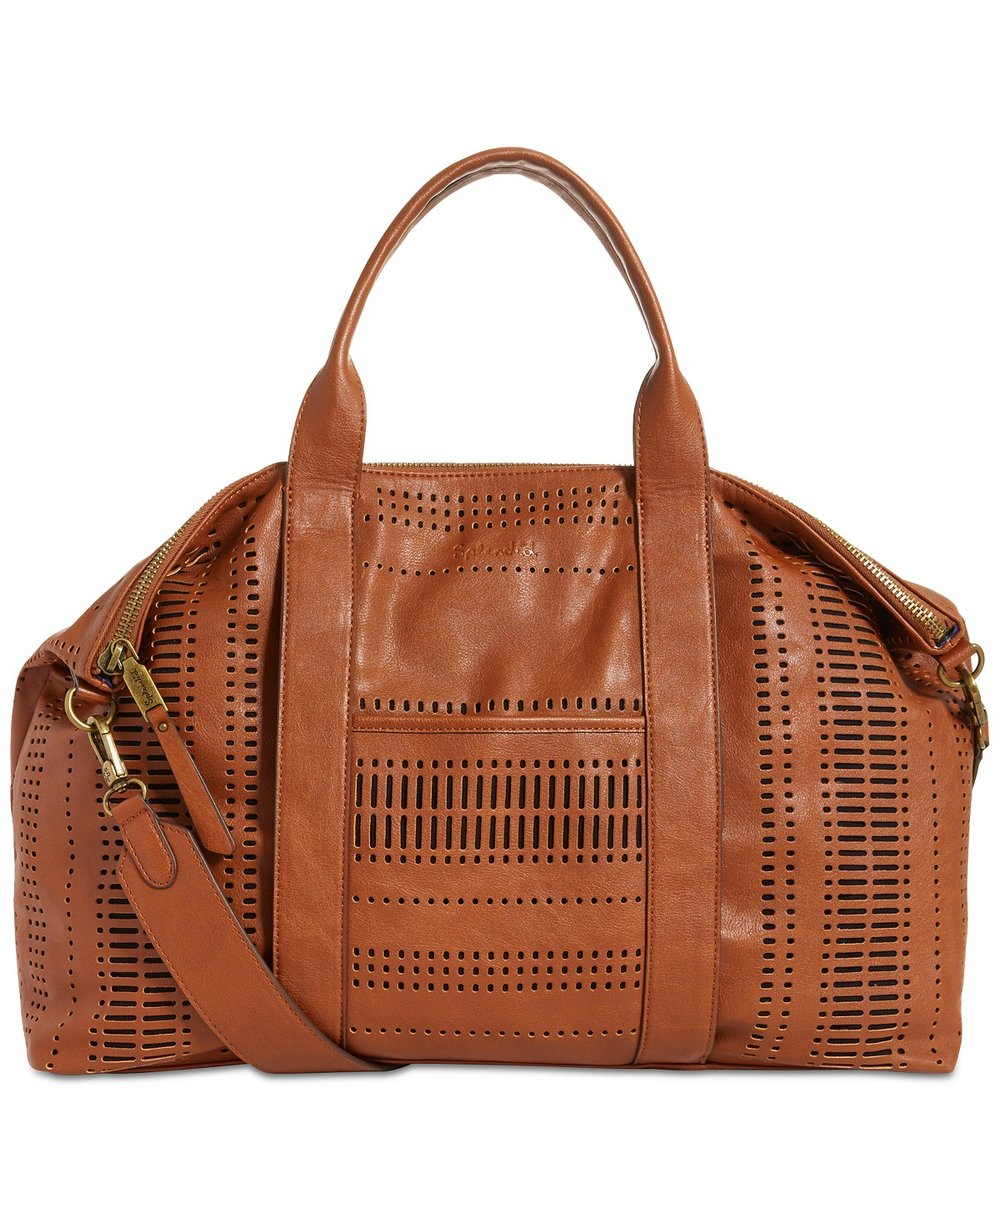 Monterey Extra-Large Weekender - Ouf. I love this bag so much. Mom can stylishly pack for a weekend away with this spacious, faux-leather bag that accommodates a yoga mat, laptop, and other can't-live-without items. Price: Originally $148, now just $88.80